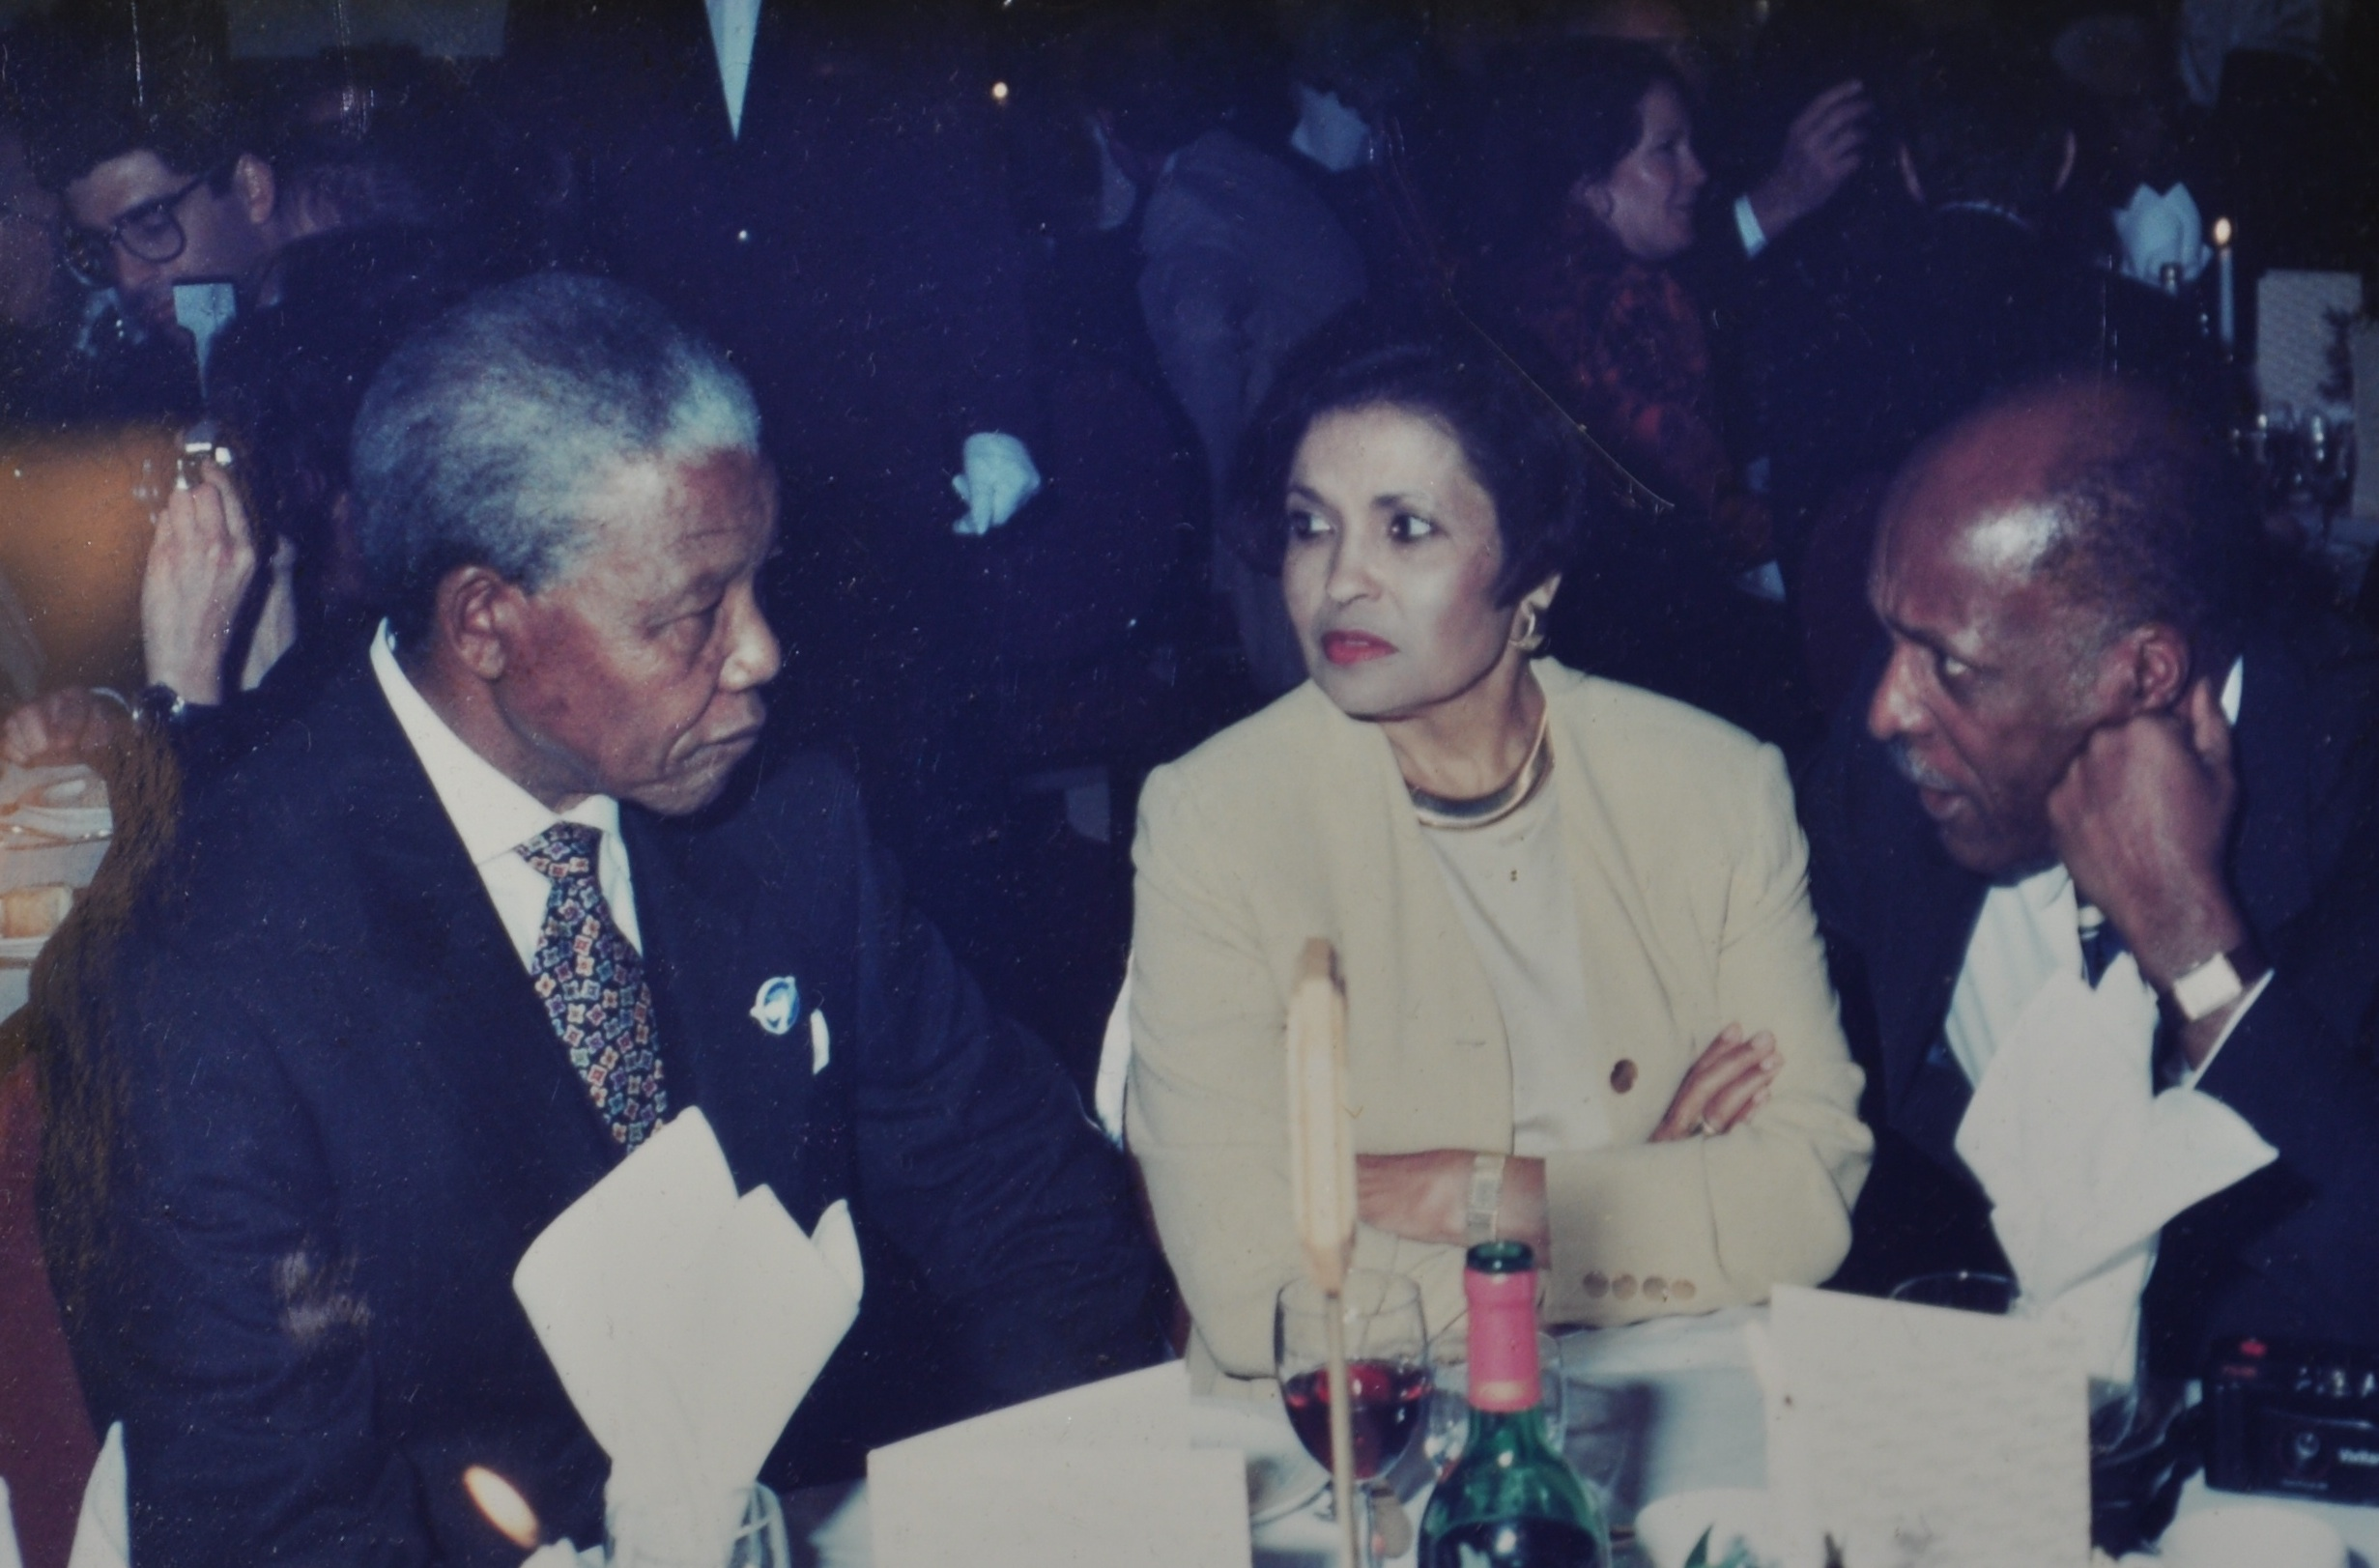 Dinner with South African President Nelson Mandela. In a once-in-a-lifetime experience, Cincinnati federal Judge Nathaniel Jones and his late wife Lillian were asked to dine with South African President Nelson Mandela during Jones' second visit to the country when he assisted in the drafting of a new constitution for South Africa. Photo provided